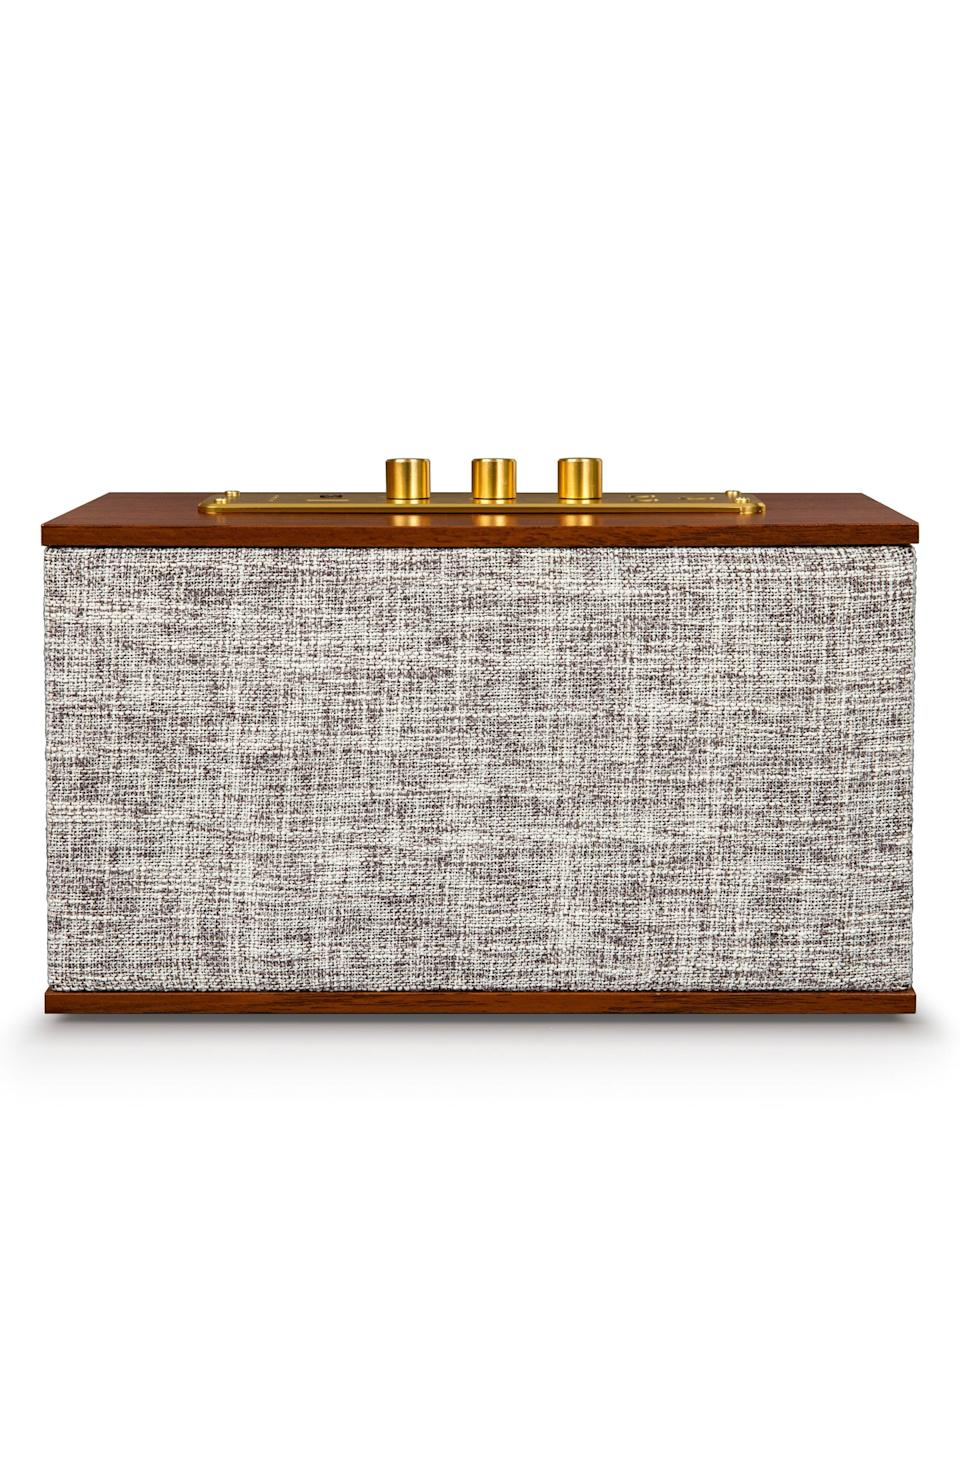 "<p><strong>CROSLEY RADIO</strong></p><p>nordstrom.com</p><p><strong>$94.99</strong></p><p><a href=""https://go.redirectingat.com?id=74968X1596630&url=https%3A%2F%2Fshop.nordstrom.com%2Fs%2Fcrosley-radio-octave-bluetooth-speaker%2F5284360&sref=https%3A%2F%2Fwww.goodhousekeeping.com%2Fholidays%2Fgift-ideas%2Fg28748940%2Fbest-gifts-for-husbands%2F"" rel=""nofollow noopener"" target=""_blank"" data-ylk=""slk:Shop Now"" class=""link rapid-noclick-resp"">Shop Now</a></p><p>Even though his weekly band practice is reserved for the garage, this bluetooth speaker will give the office or living room a similar vibe. It actually connects with his phone or laptop to stream his favorite songs, podcasts, or audiobooks. </p>"